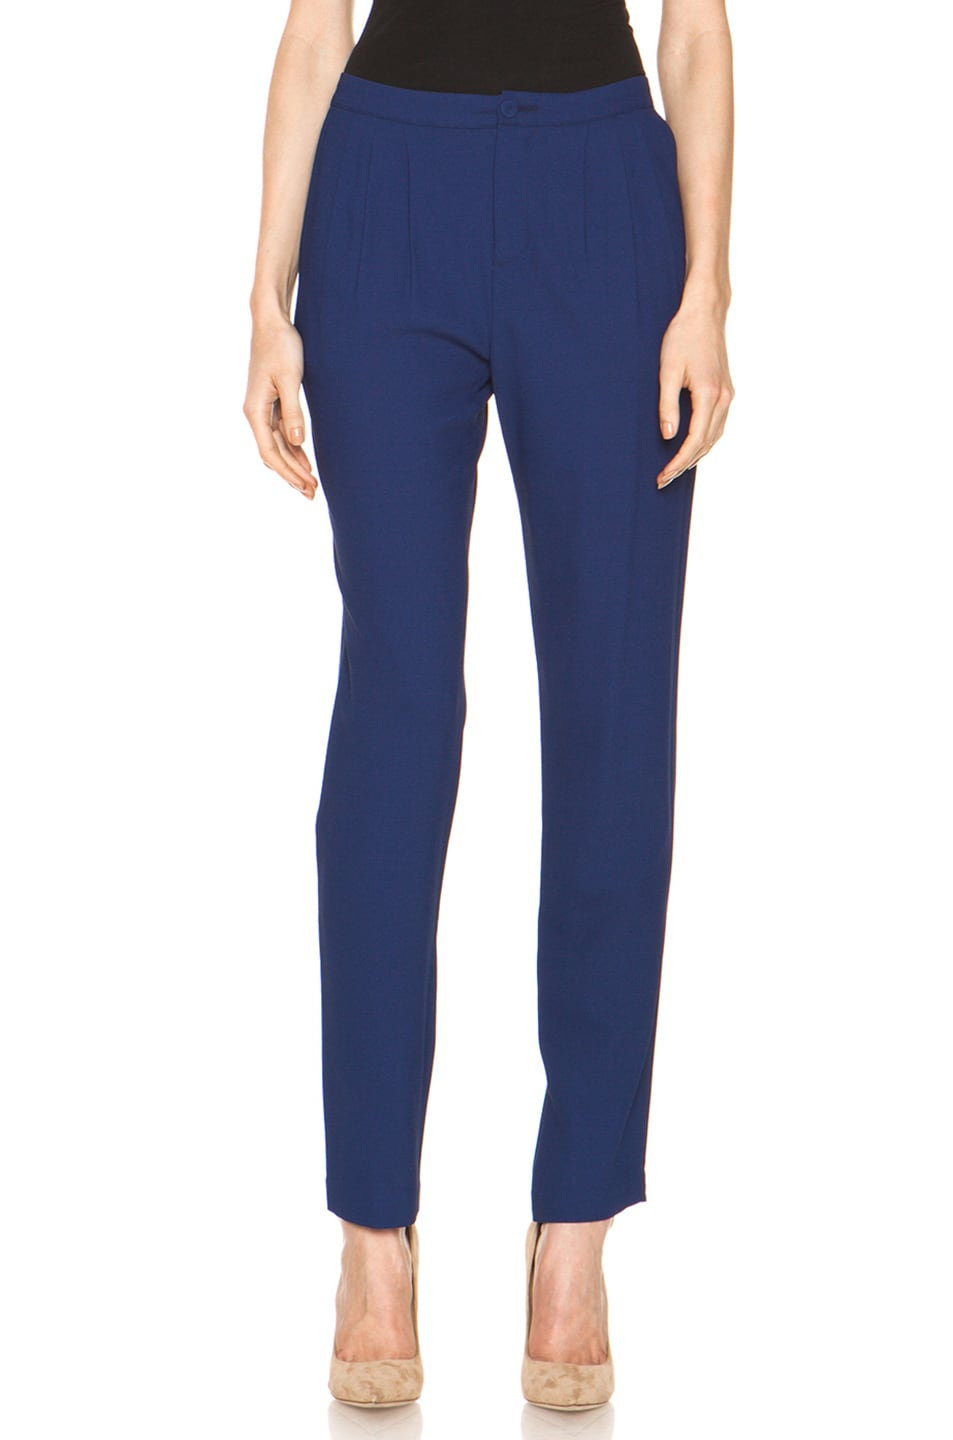 Image 1 of Girl. by Band of Outsiders Ami Pant in Twilight Blue